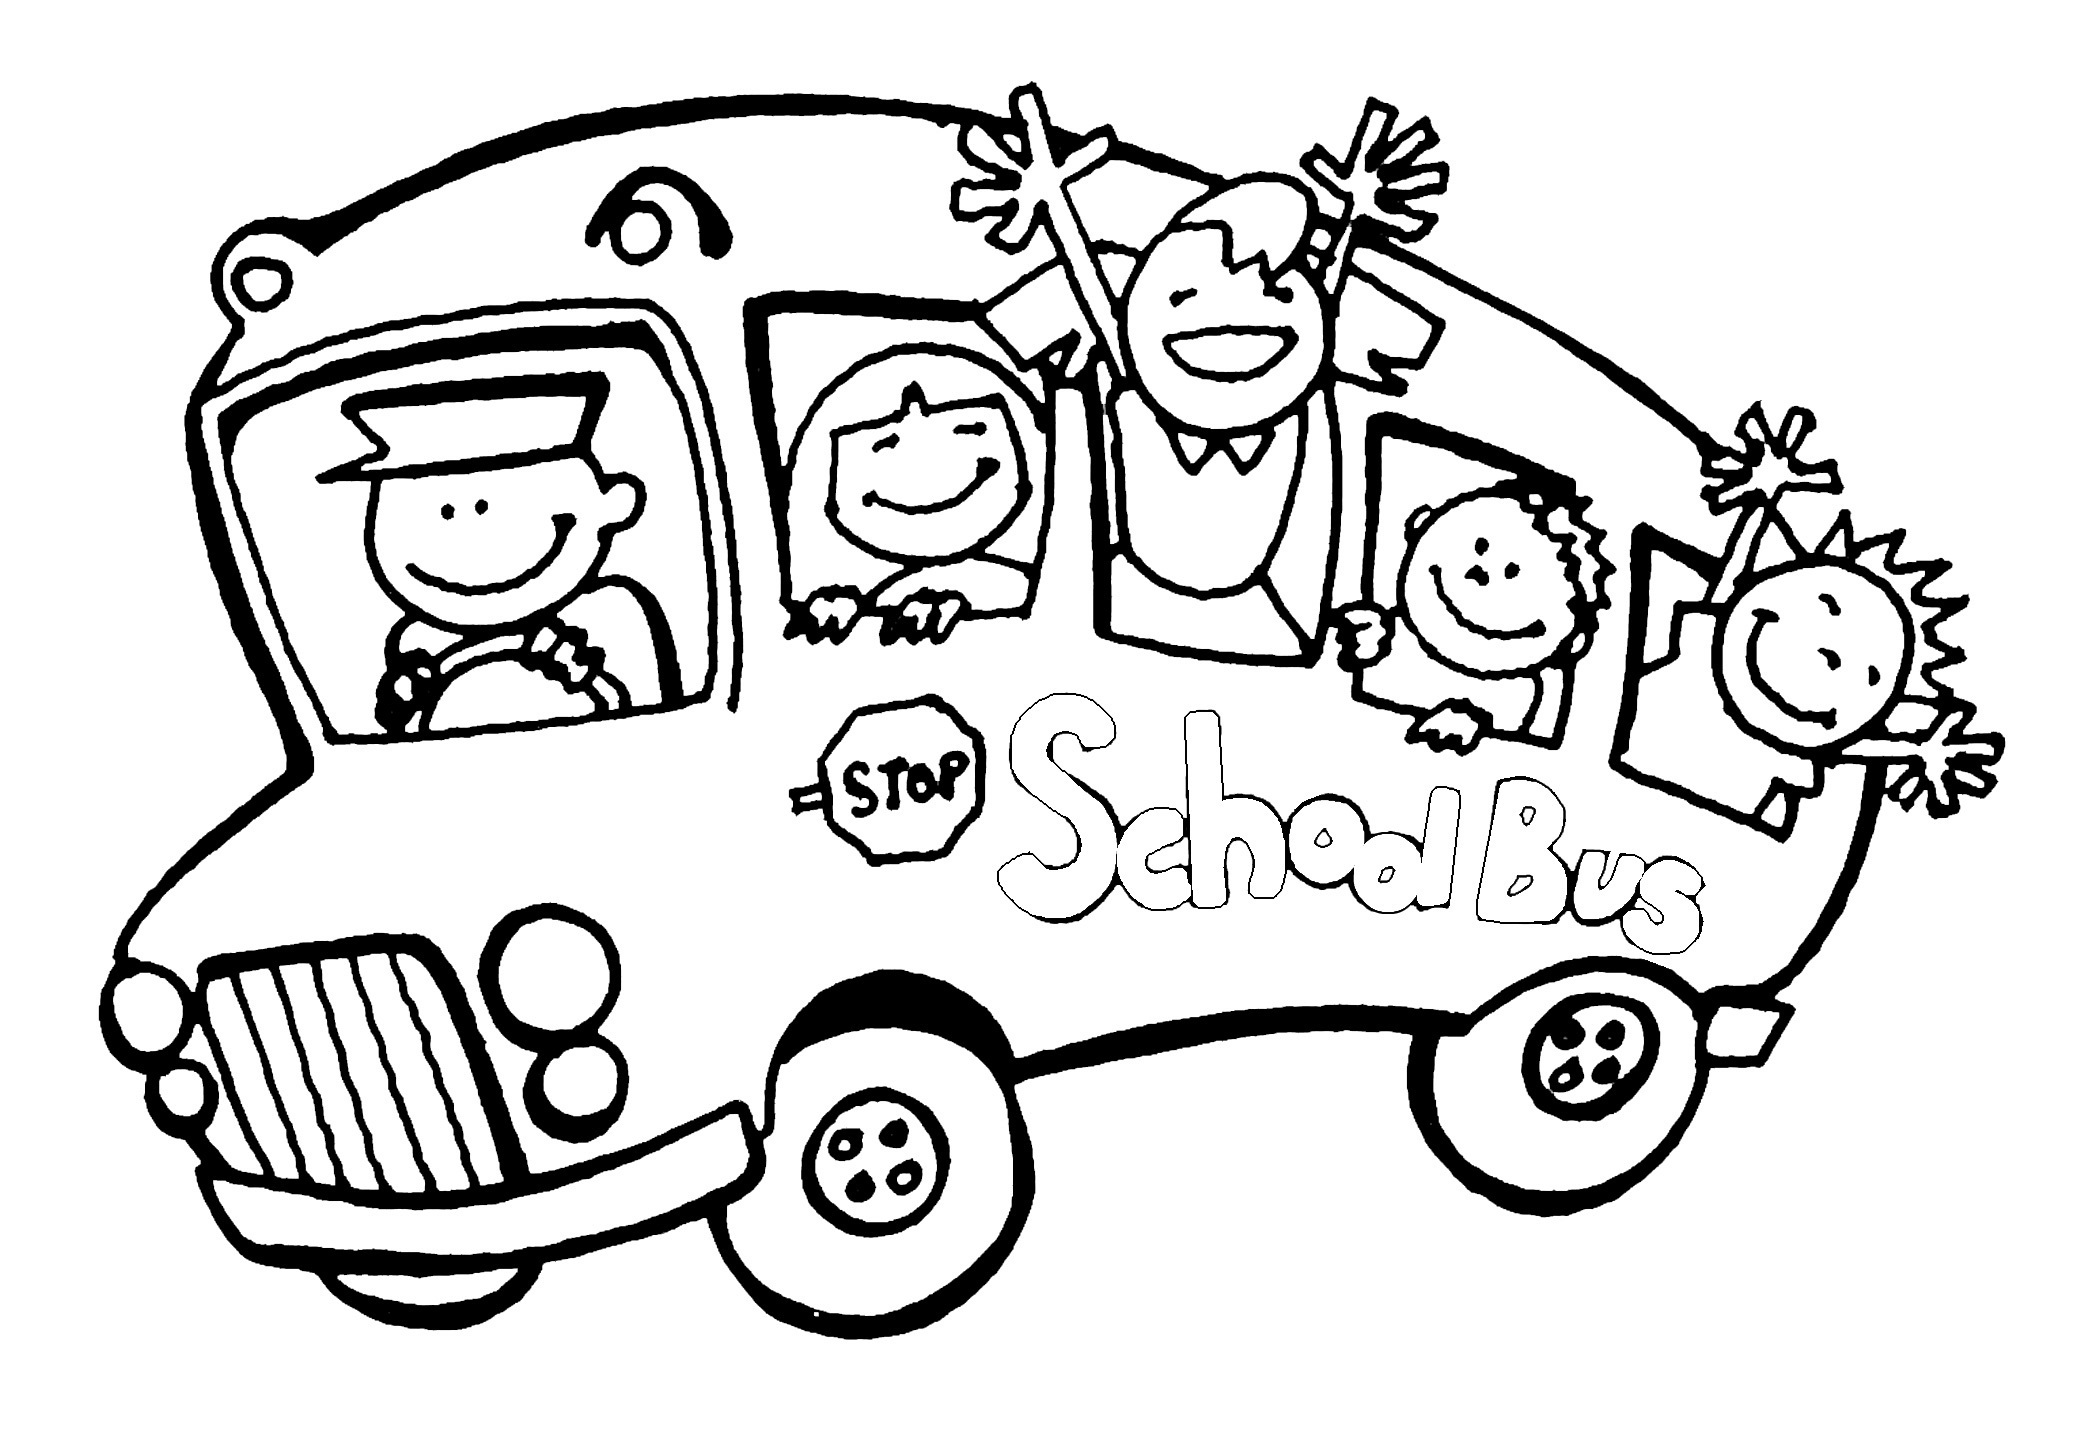 coloring worksheets kindergarten free kindergarten coloring pages to download and print for free worksheets coloring free kindergarten